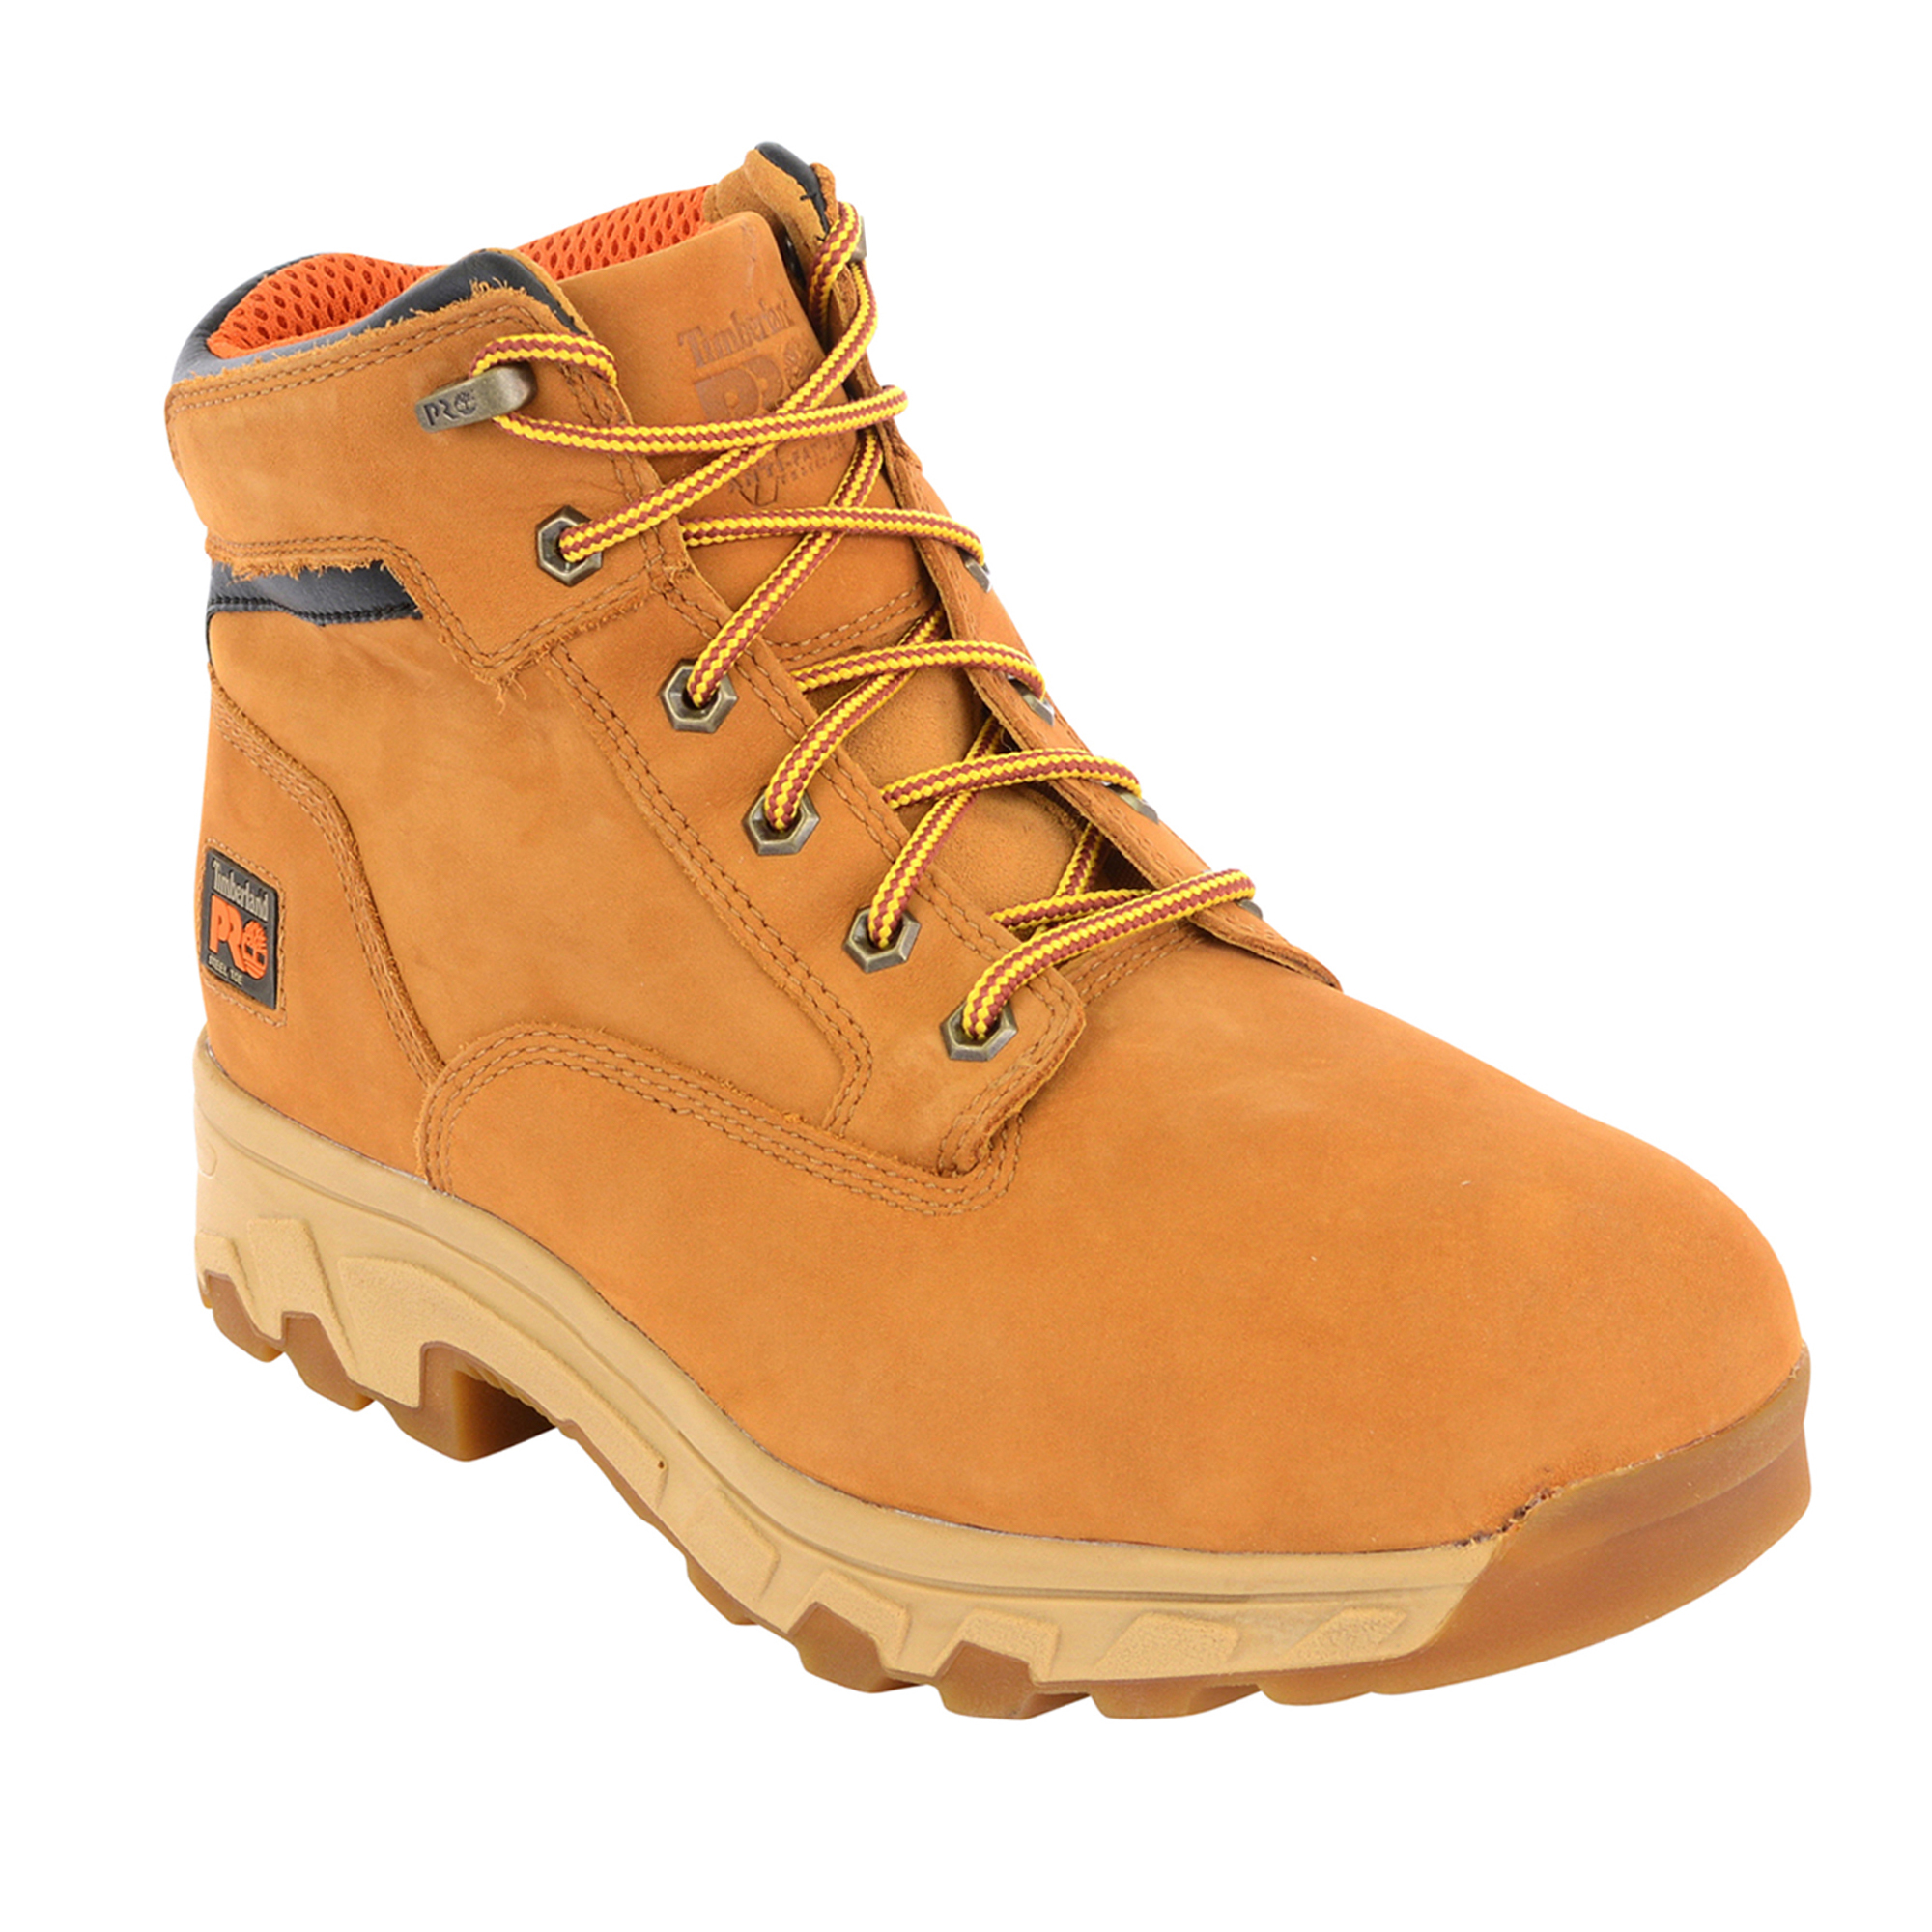 3e518aeb732 Timberland Pro,024774,Workstead Safety Boots - Honey